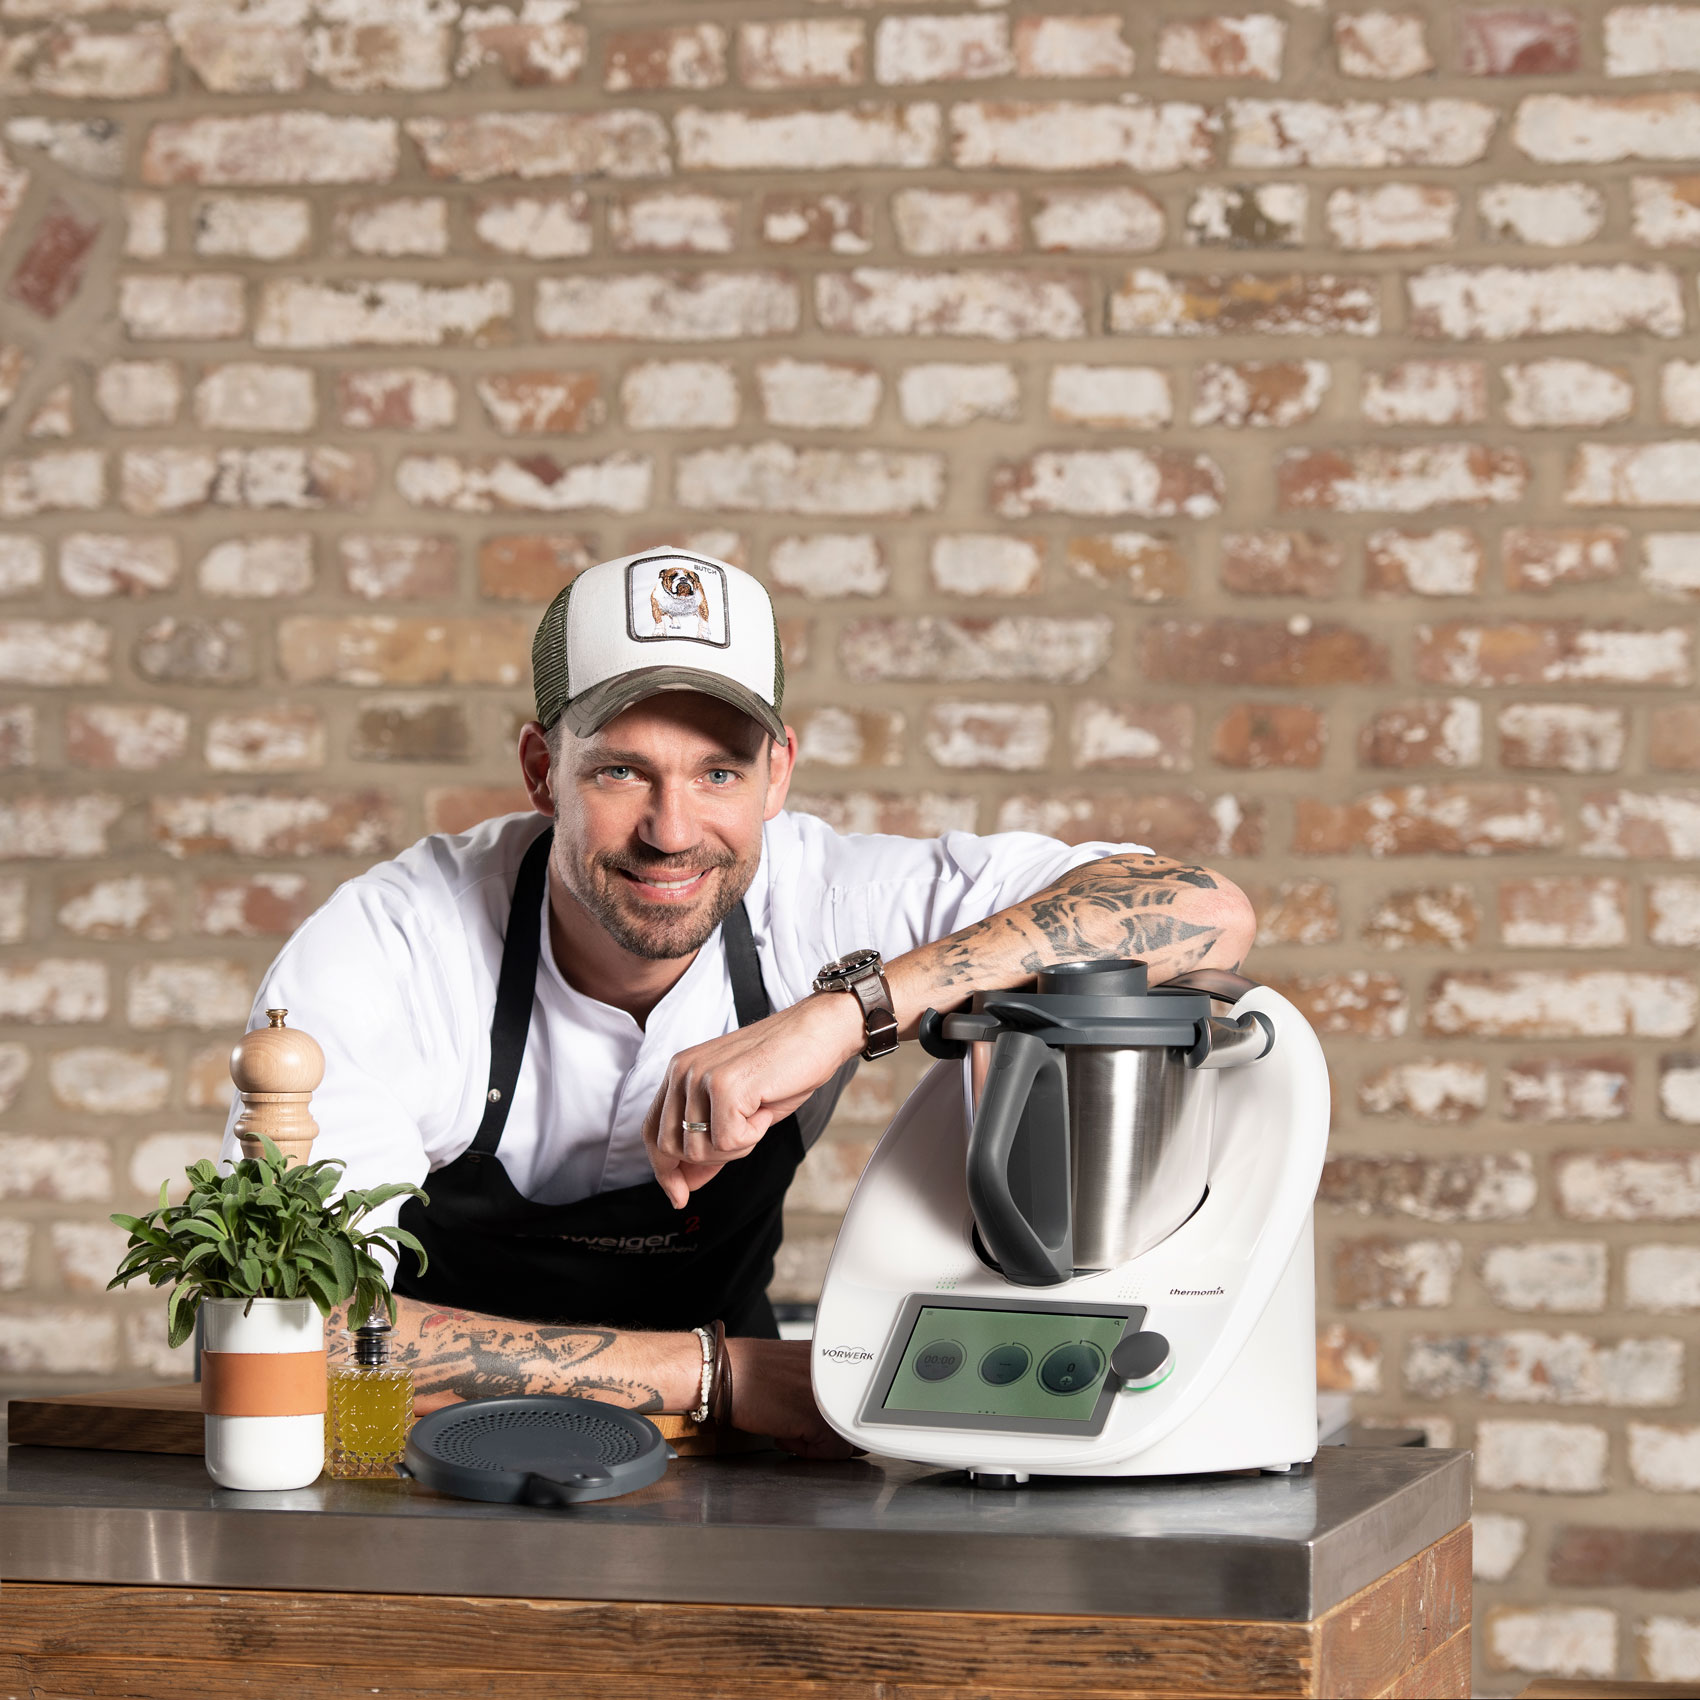 Andi Schweiger, Vorwerk, Thermomix, TM6, Editorial, Nothers